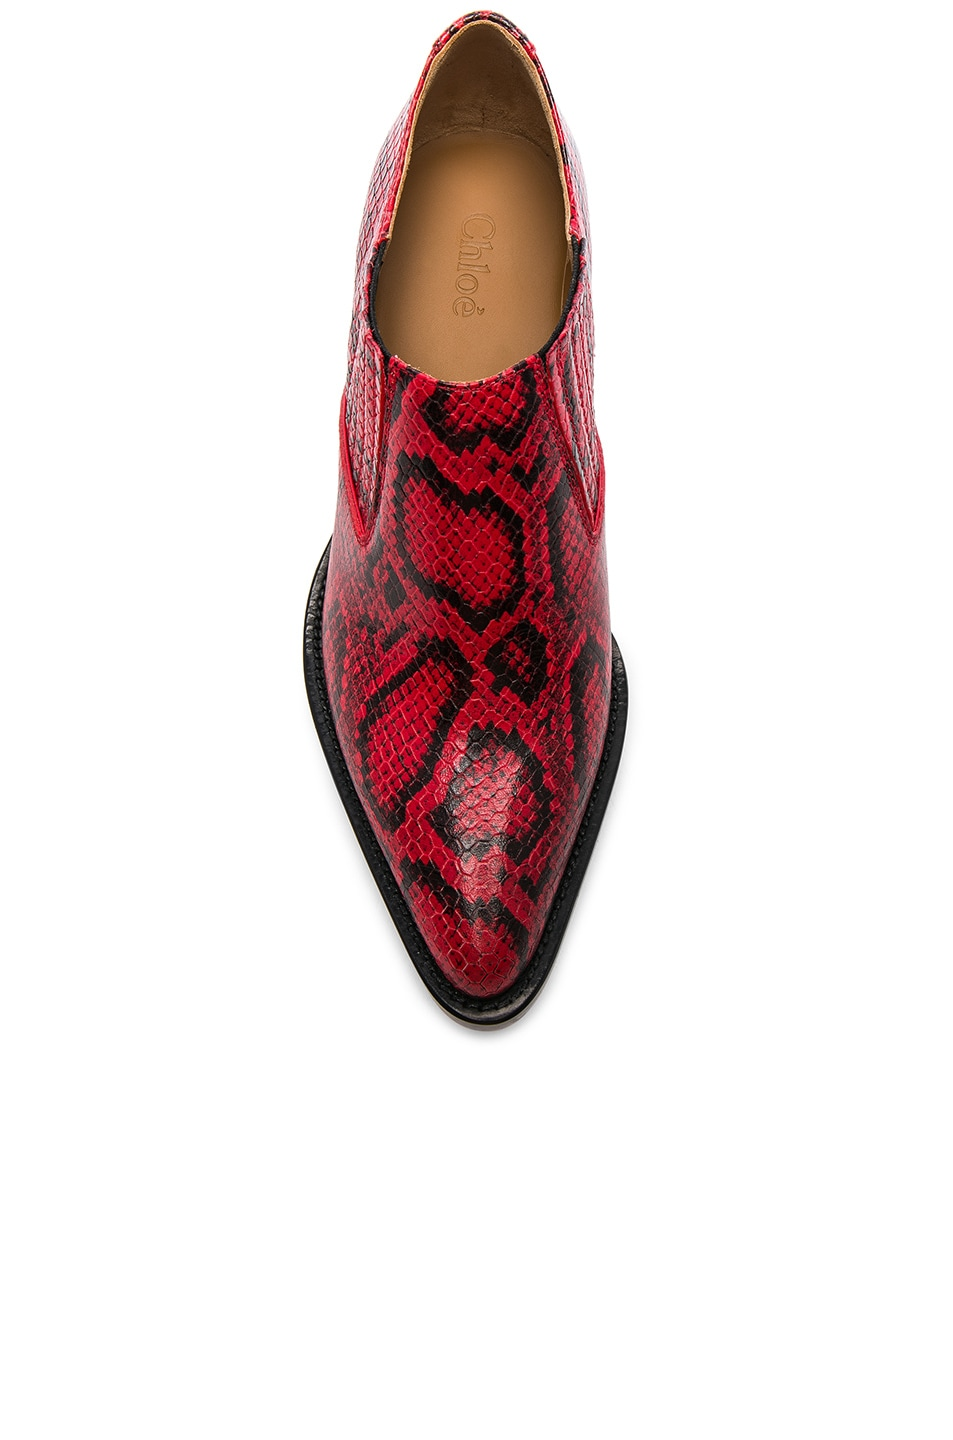 Image 4 of Chloe Rylee Python Print Leather Ankle Boots in Gypsy Red